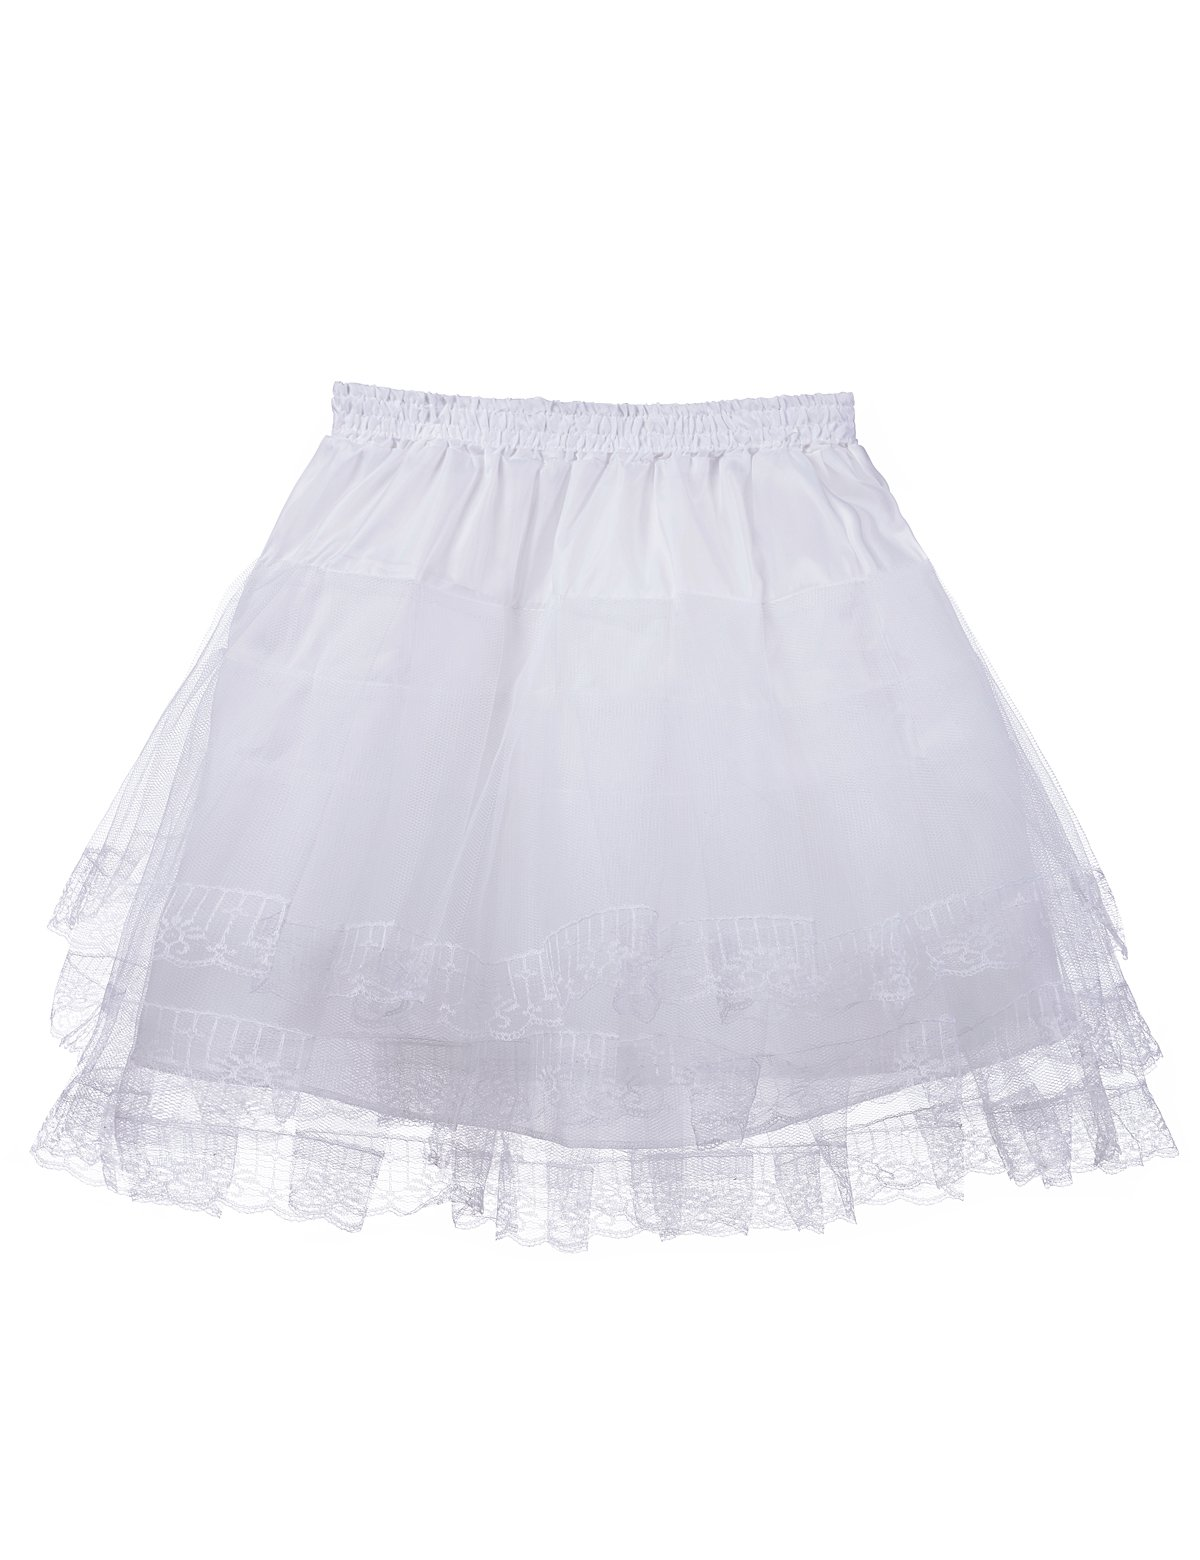 Remedios Kids Mini White Petticoat Flower Girl Wedding Underskirt Cocktail Dress Crinoline Slip White